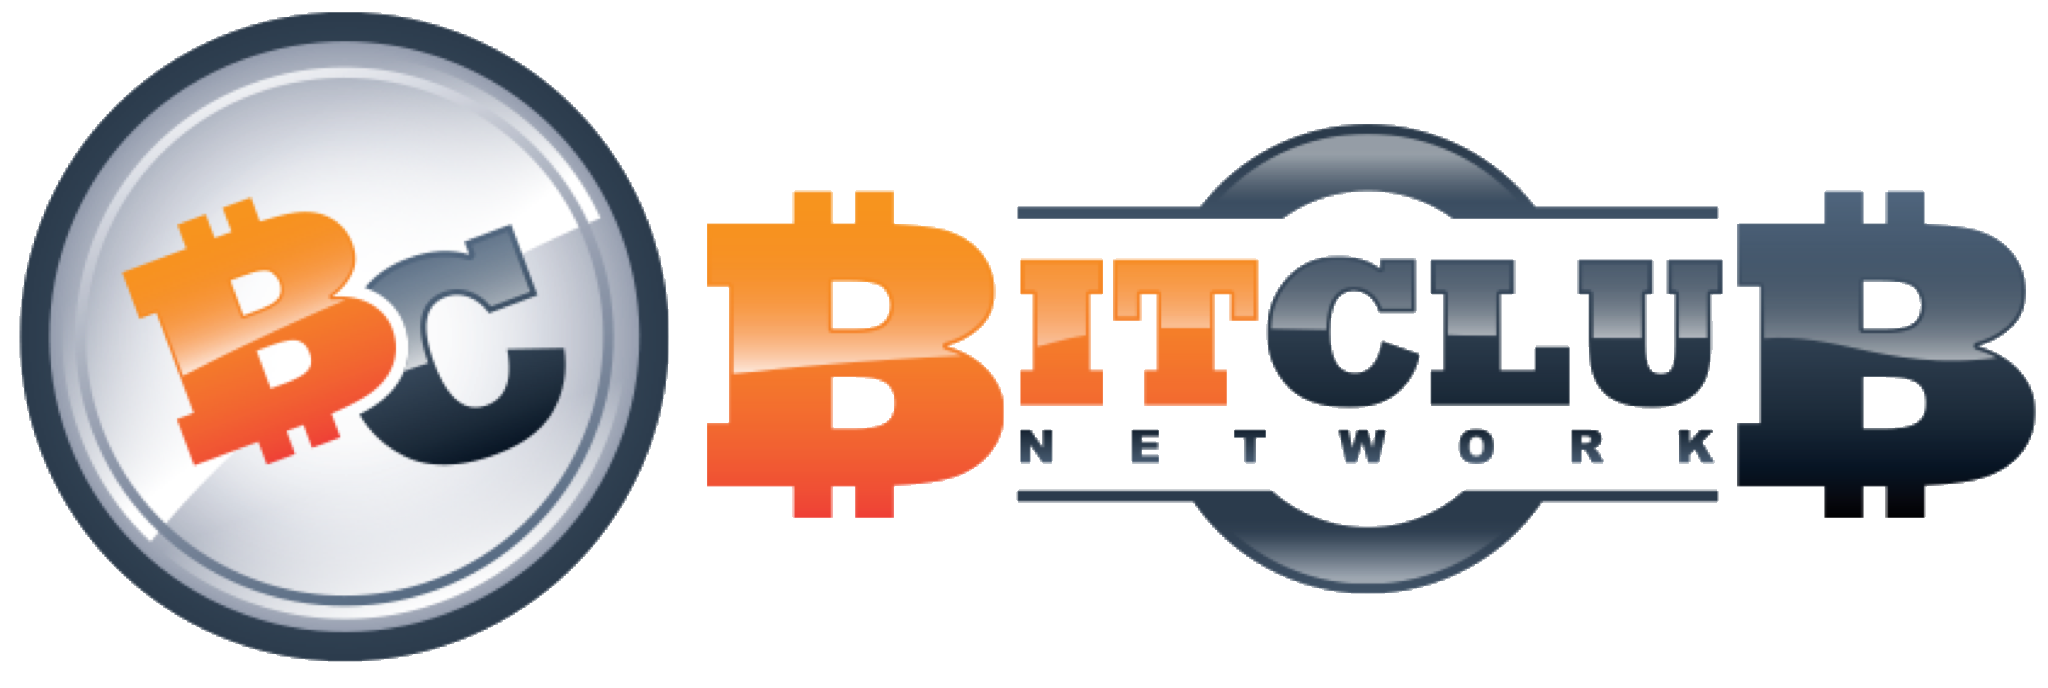 Mining Network Bitcoin Cryptocurrency Johannesburg Pool Bitclub PNG Image